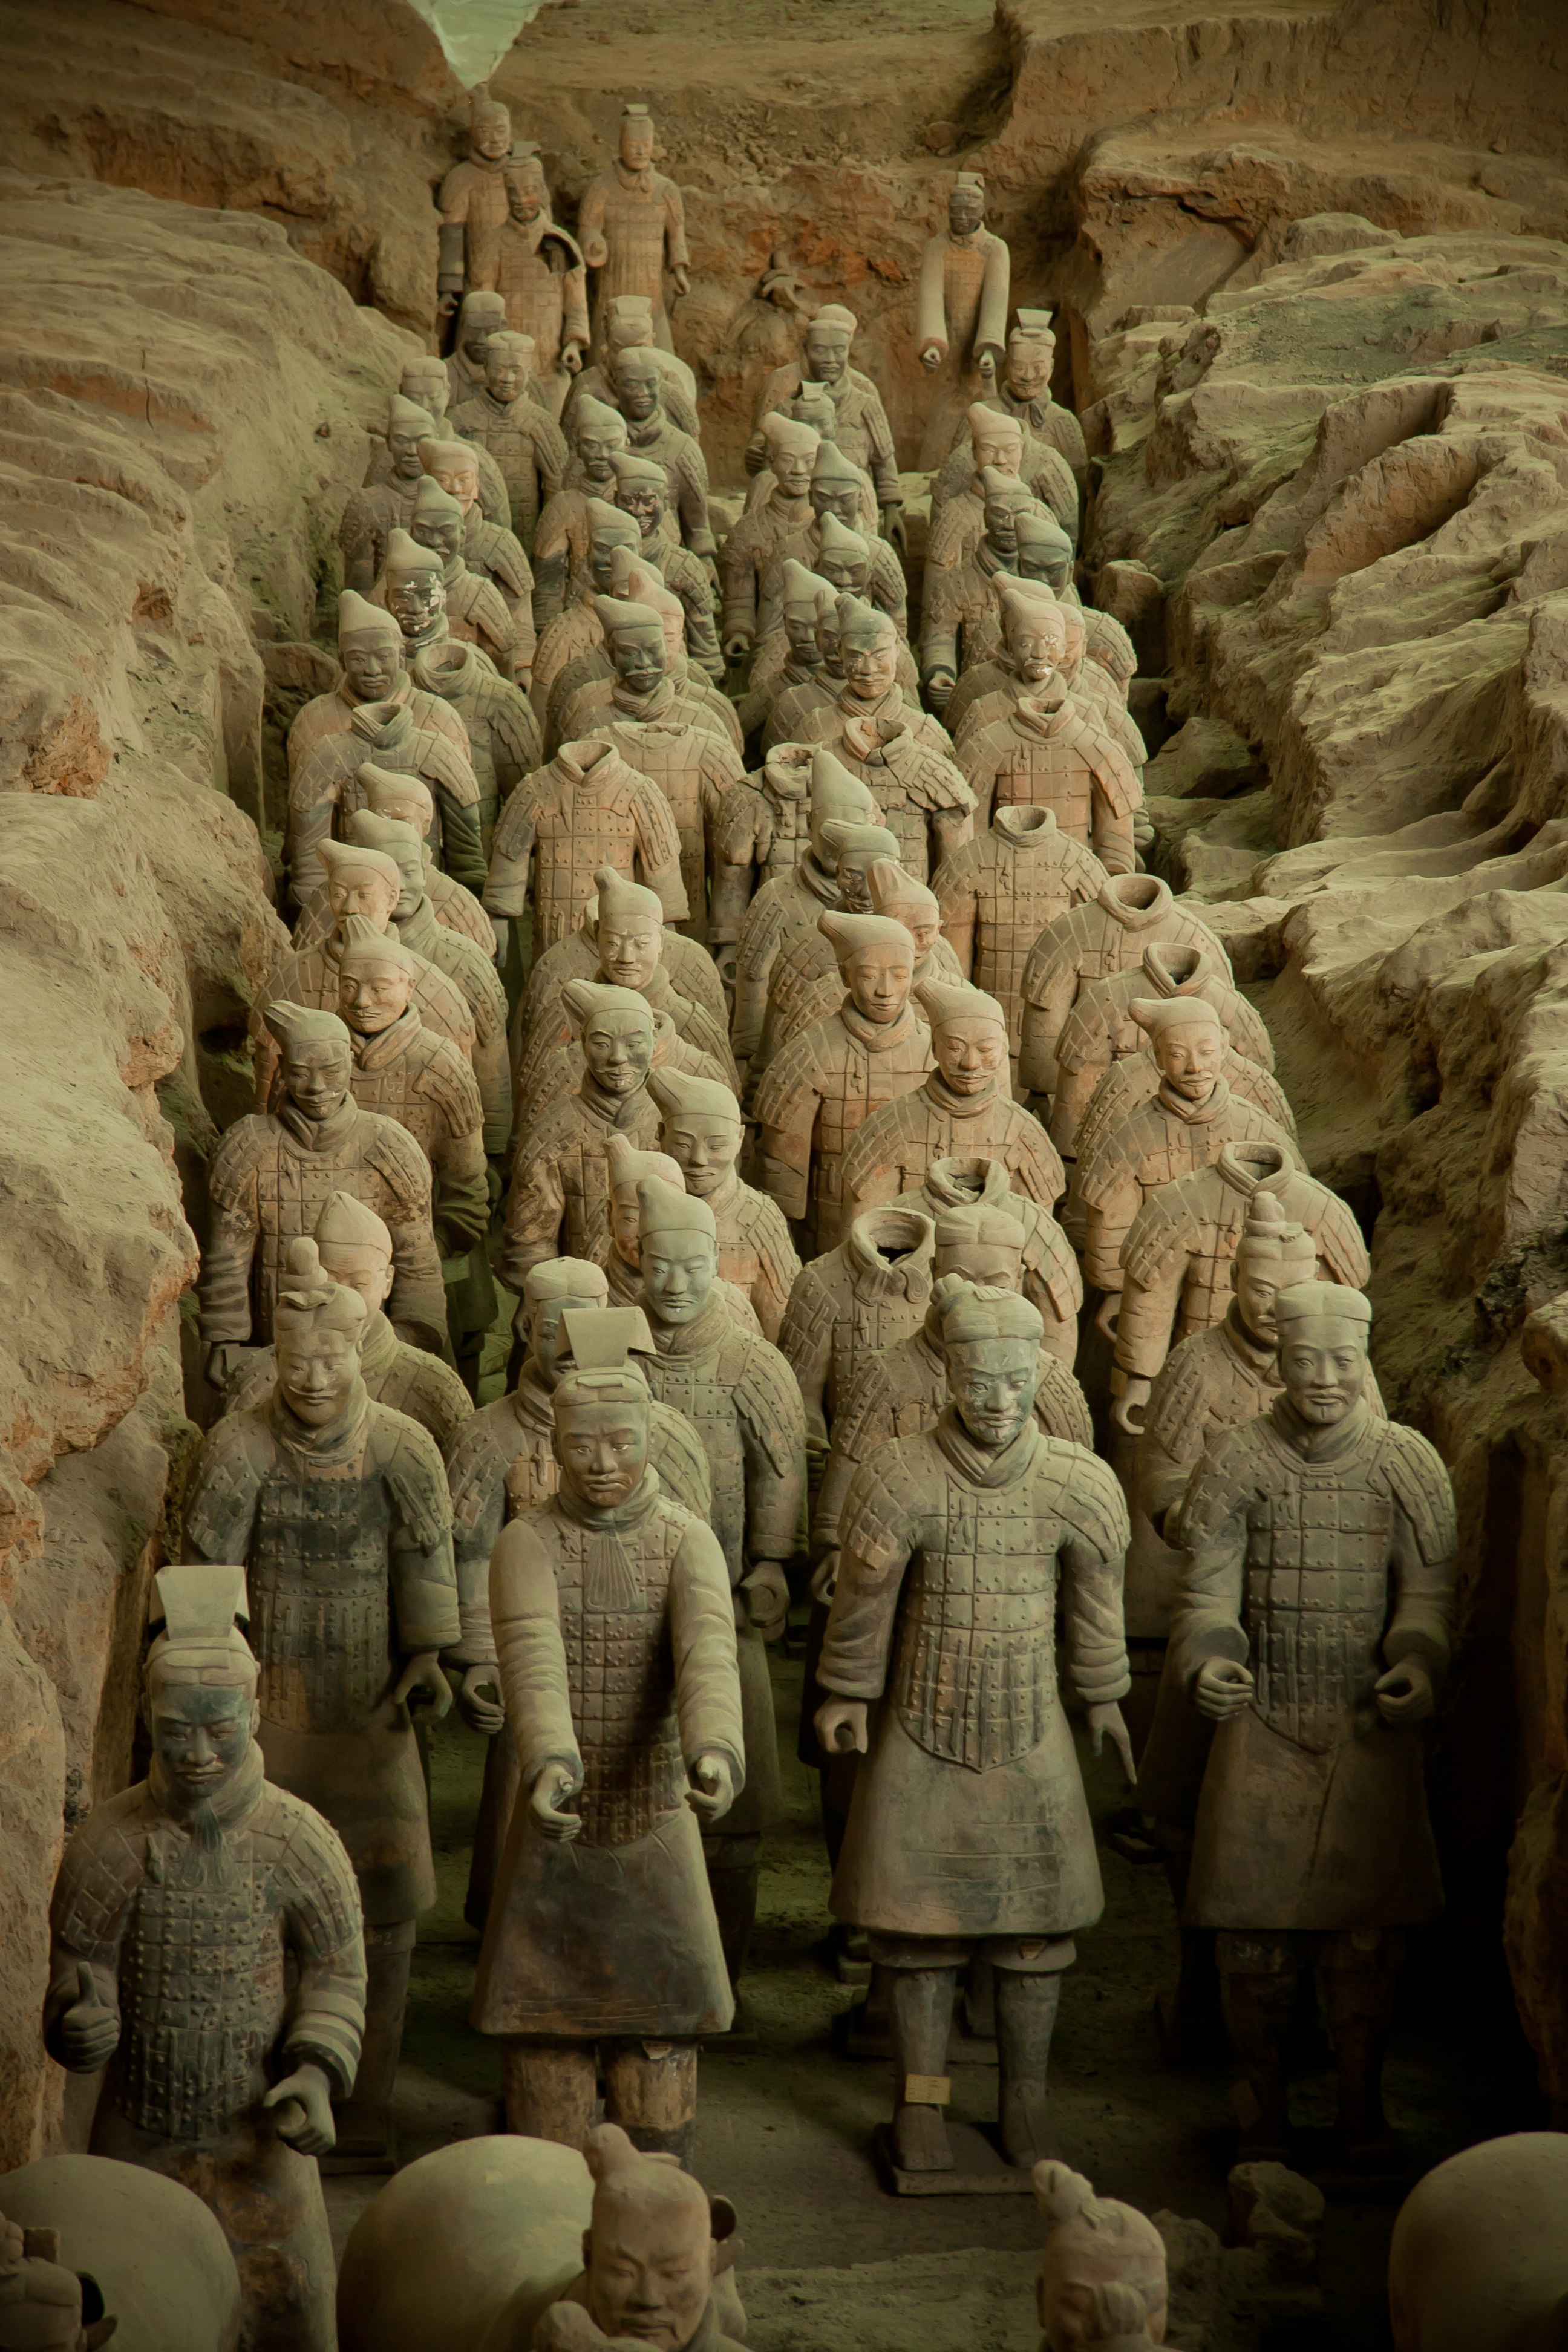 Terracotta Army. Huaqing Hot Springs